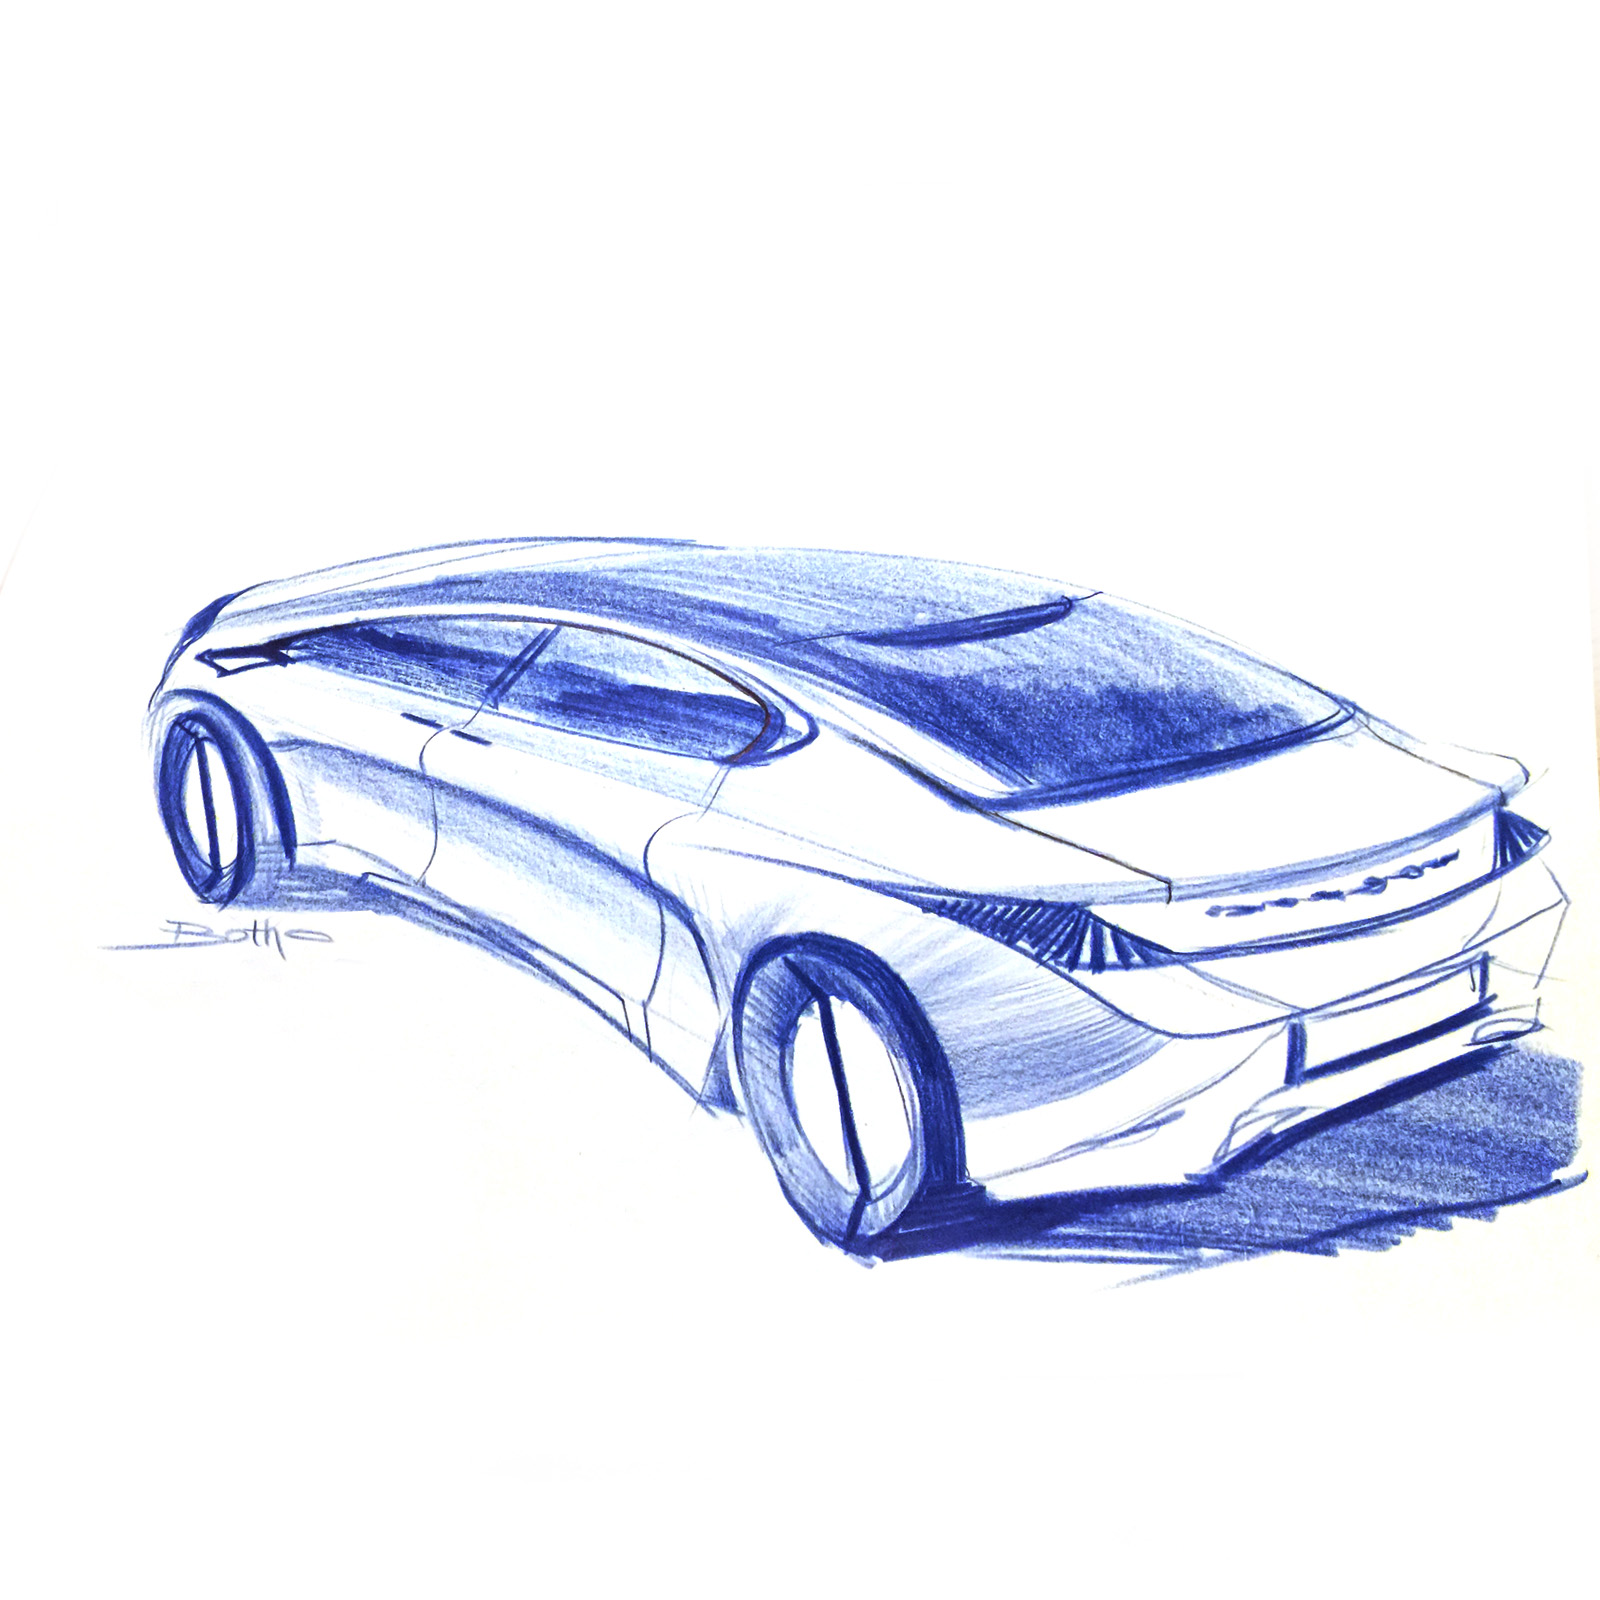 bothodesign-felix-haas-vehicle-automotive-concept-IG_sketches_011